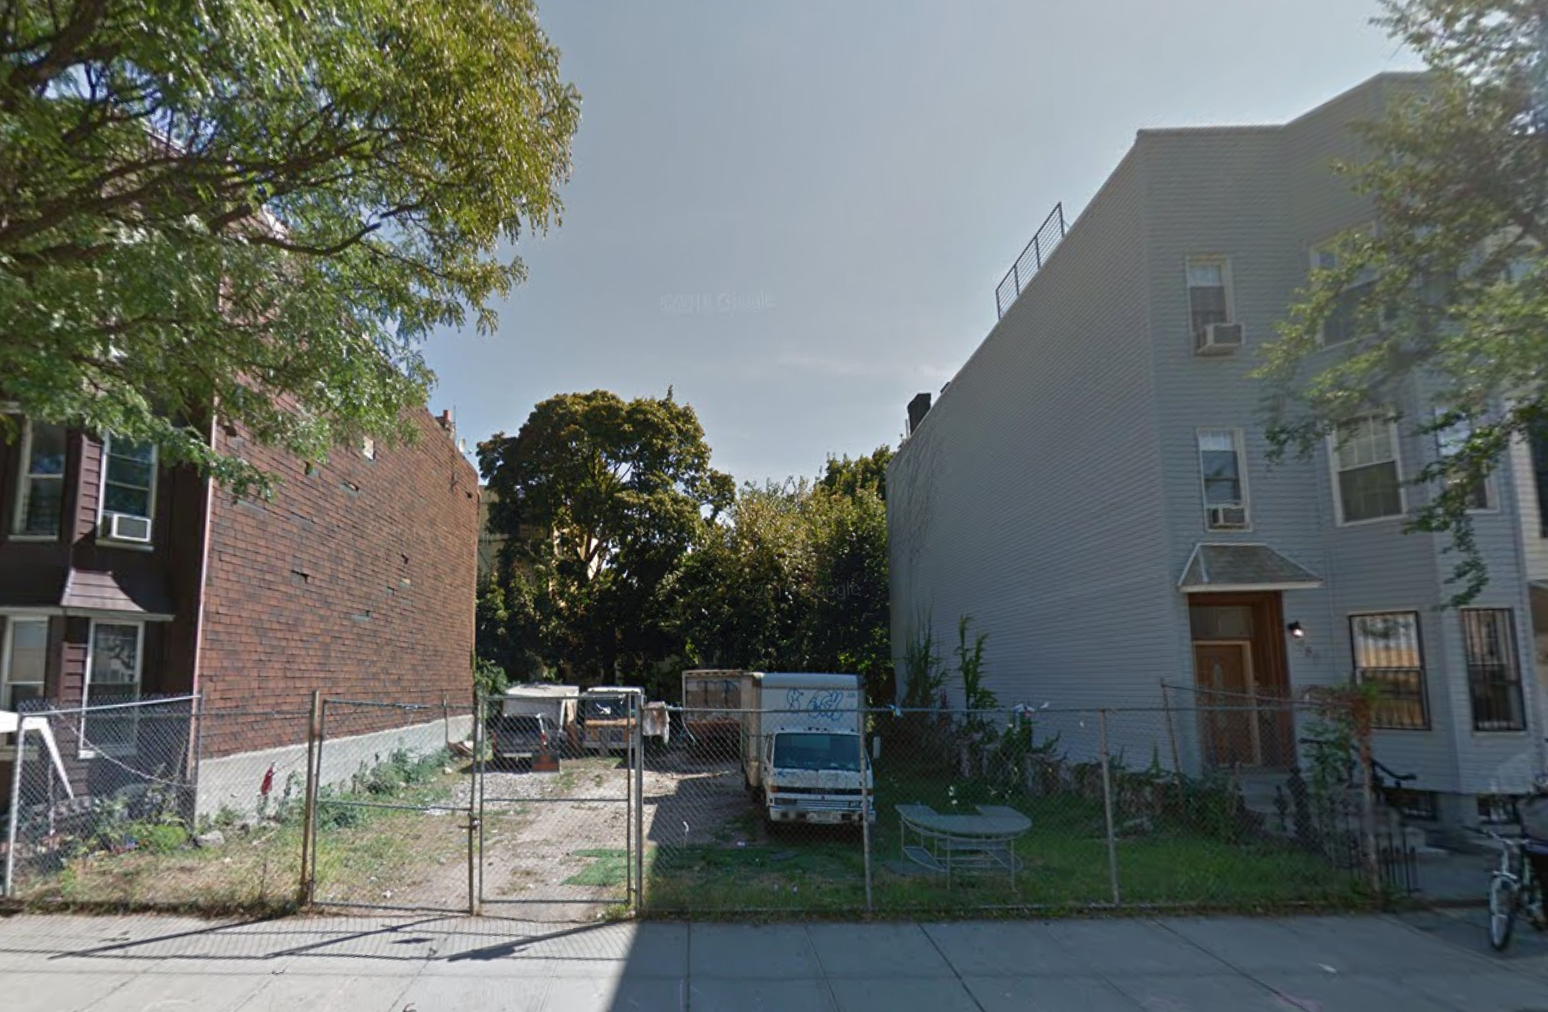 984 Madison Street, image via Google Maps